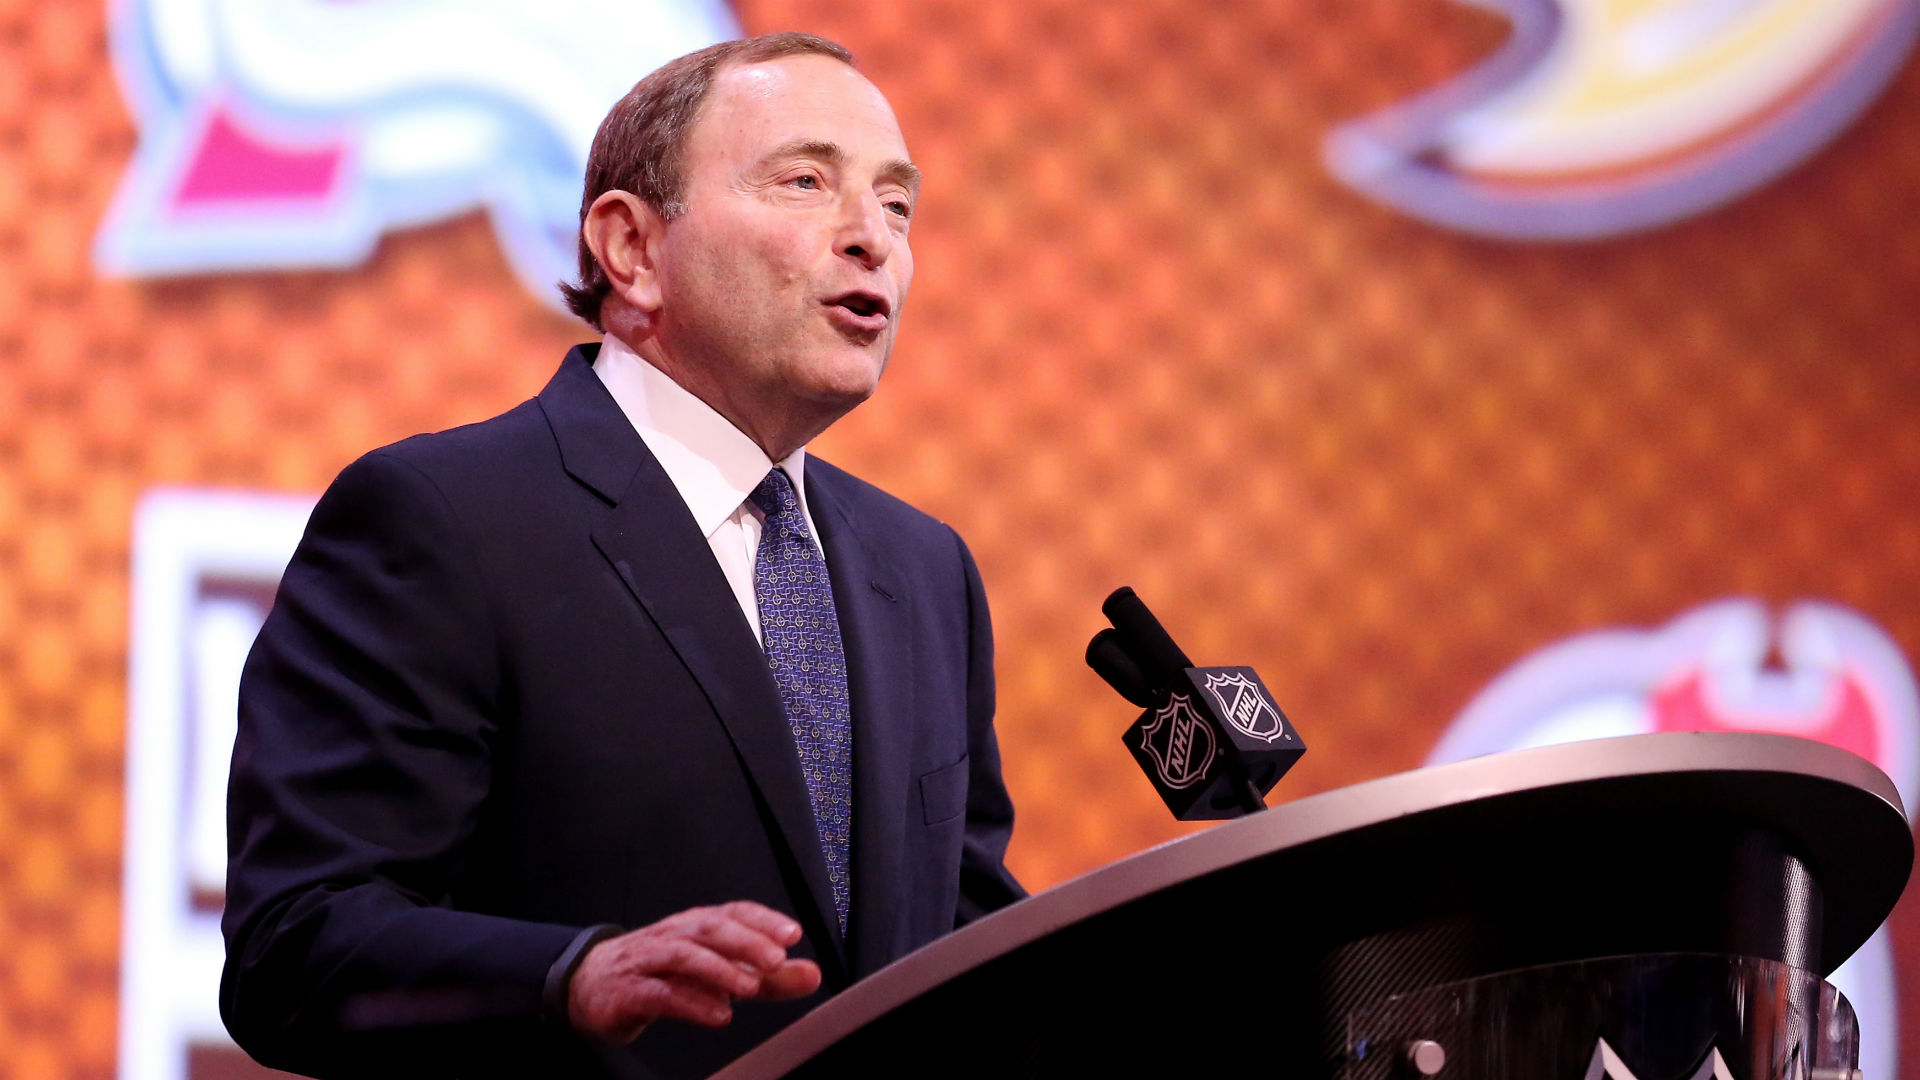 Gary-Bettman-091714-Getty-FTR.jpg